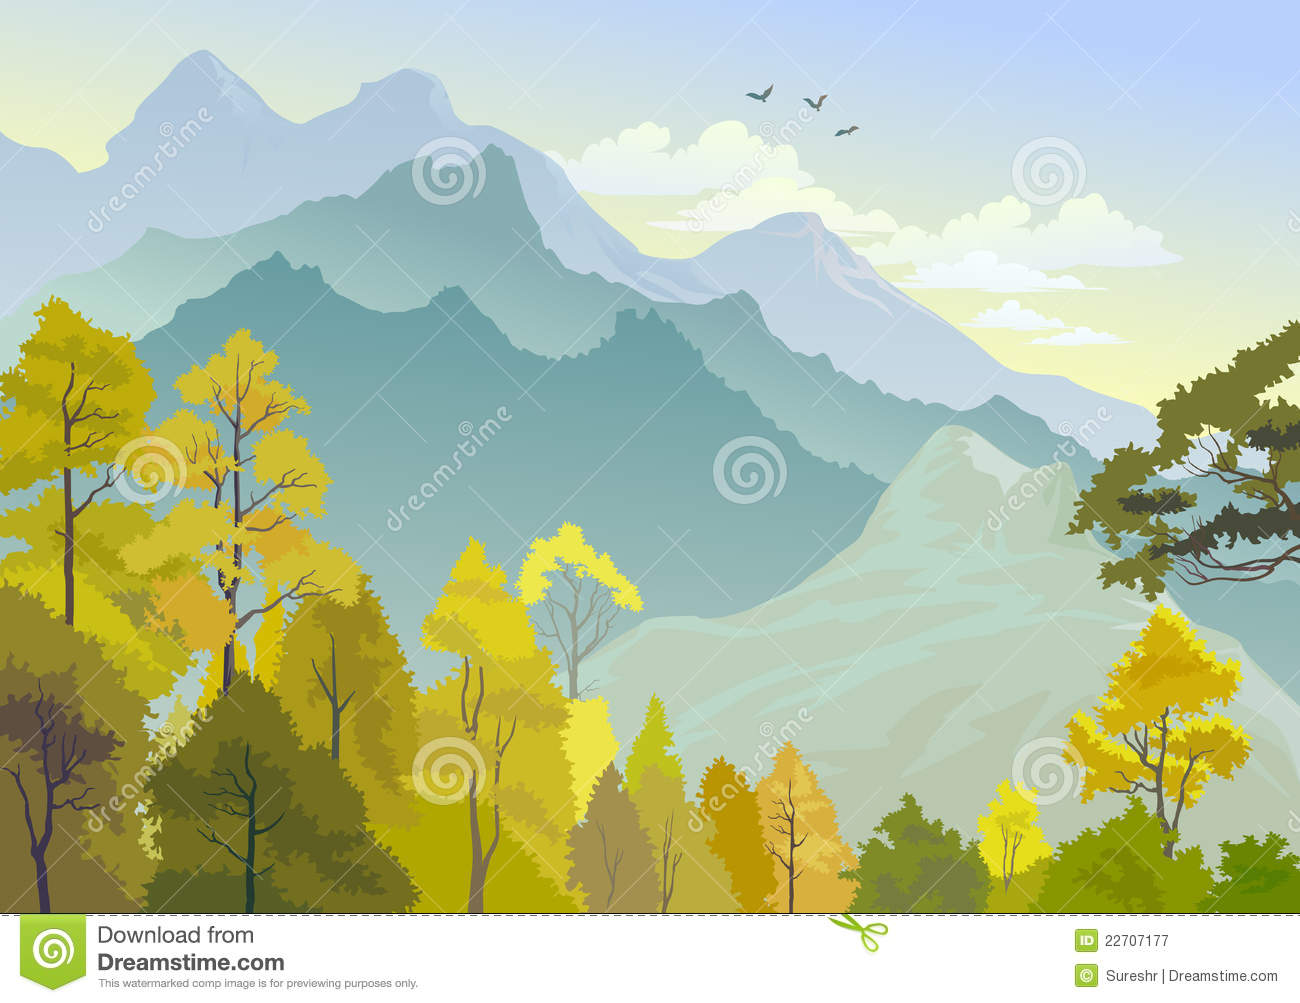 Himalayas clipart #13, Download drawings